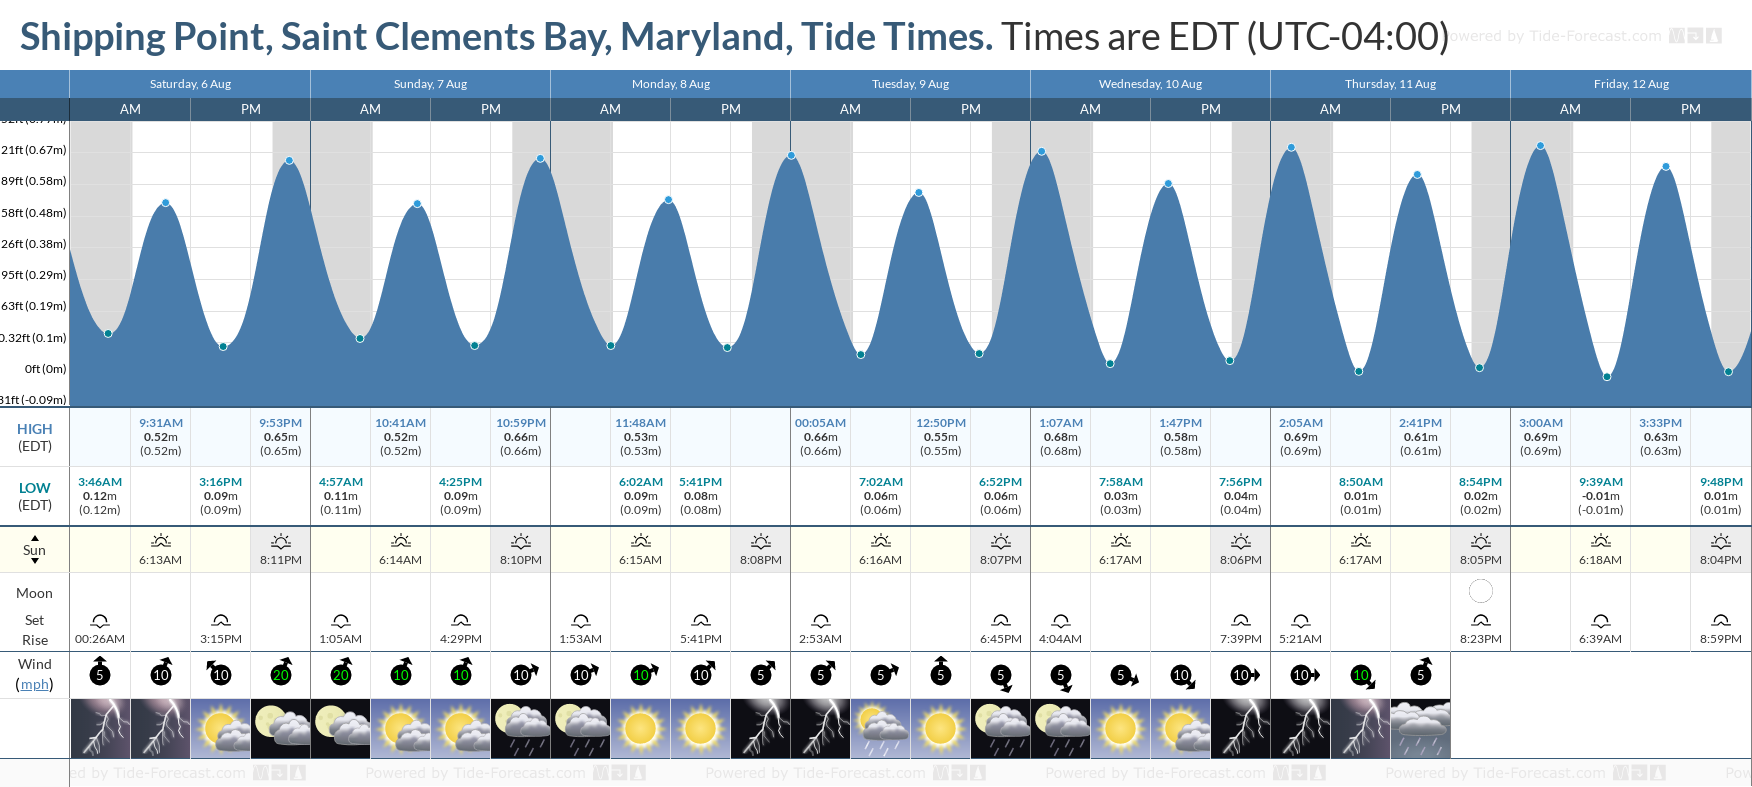 Shipping Point, Saint Clements Bay, Maryland Tide Chart including high and low tide tide times for the next 7 days